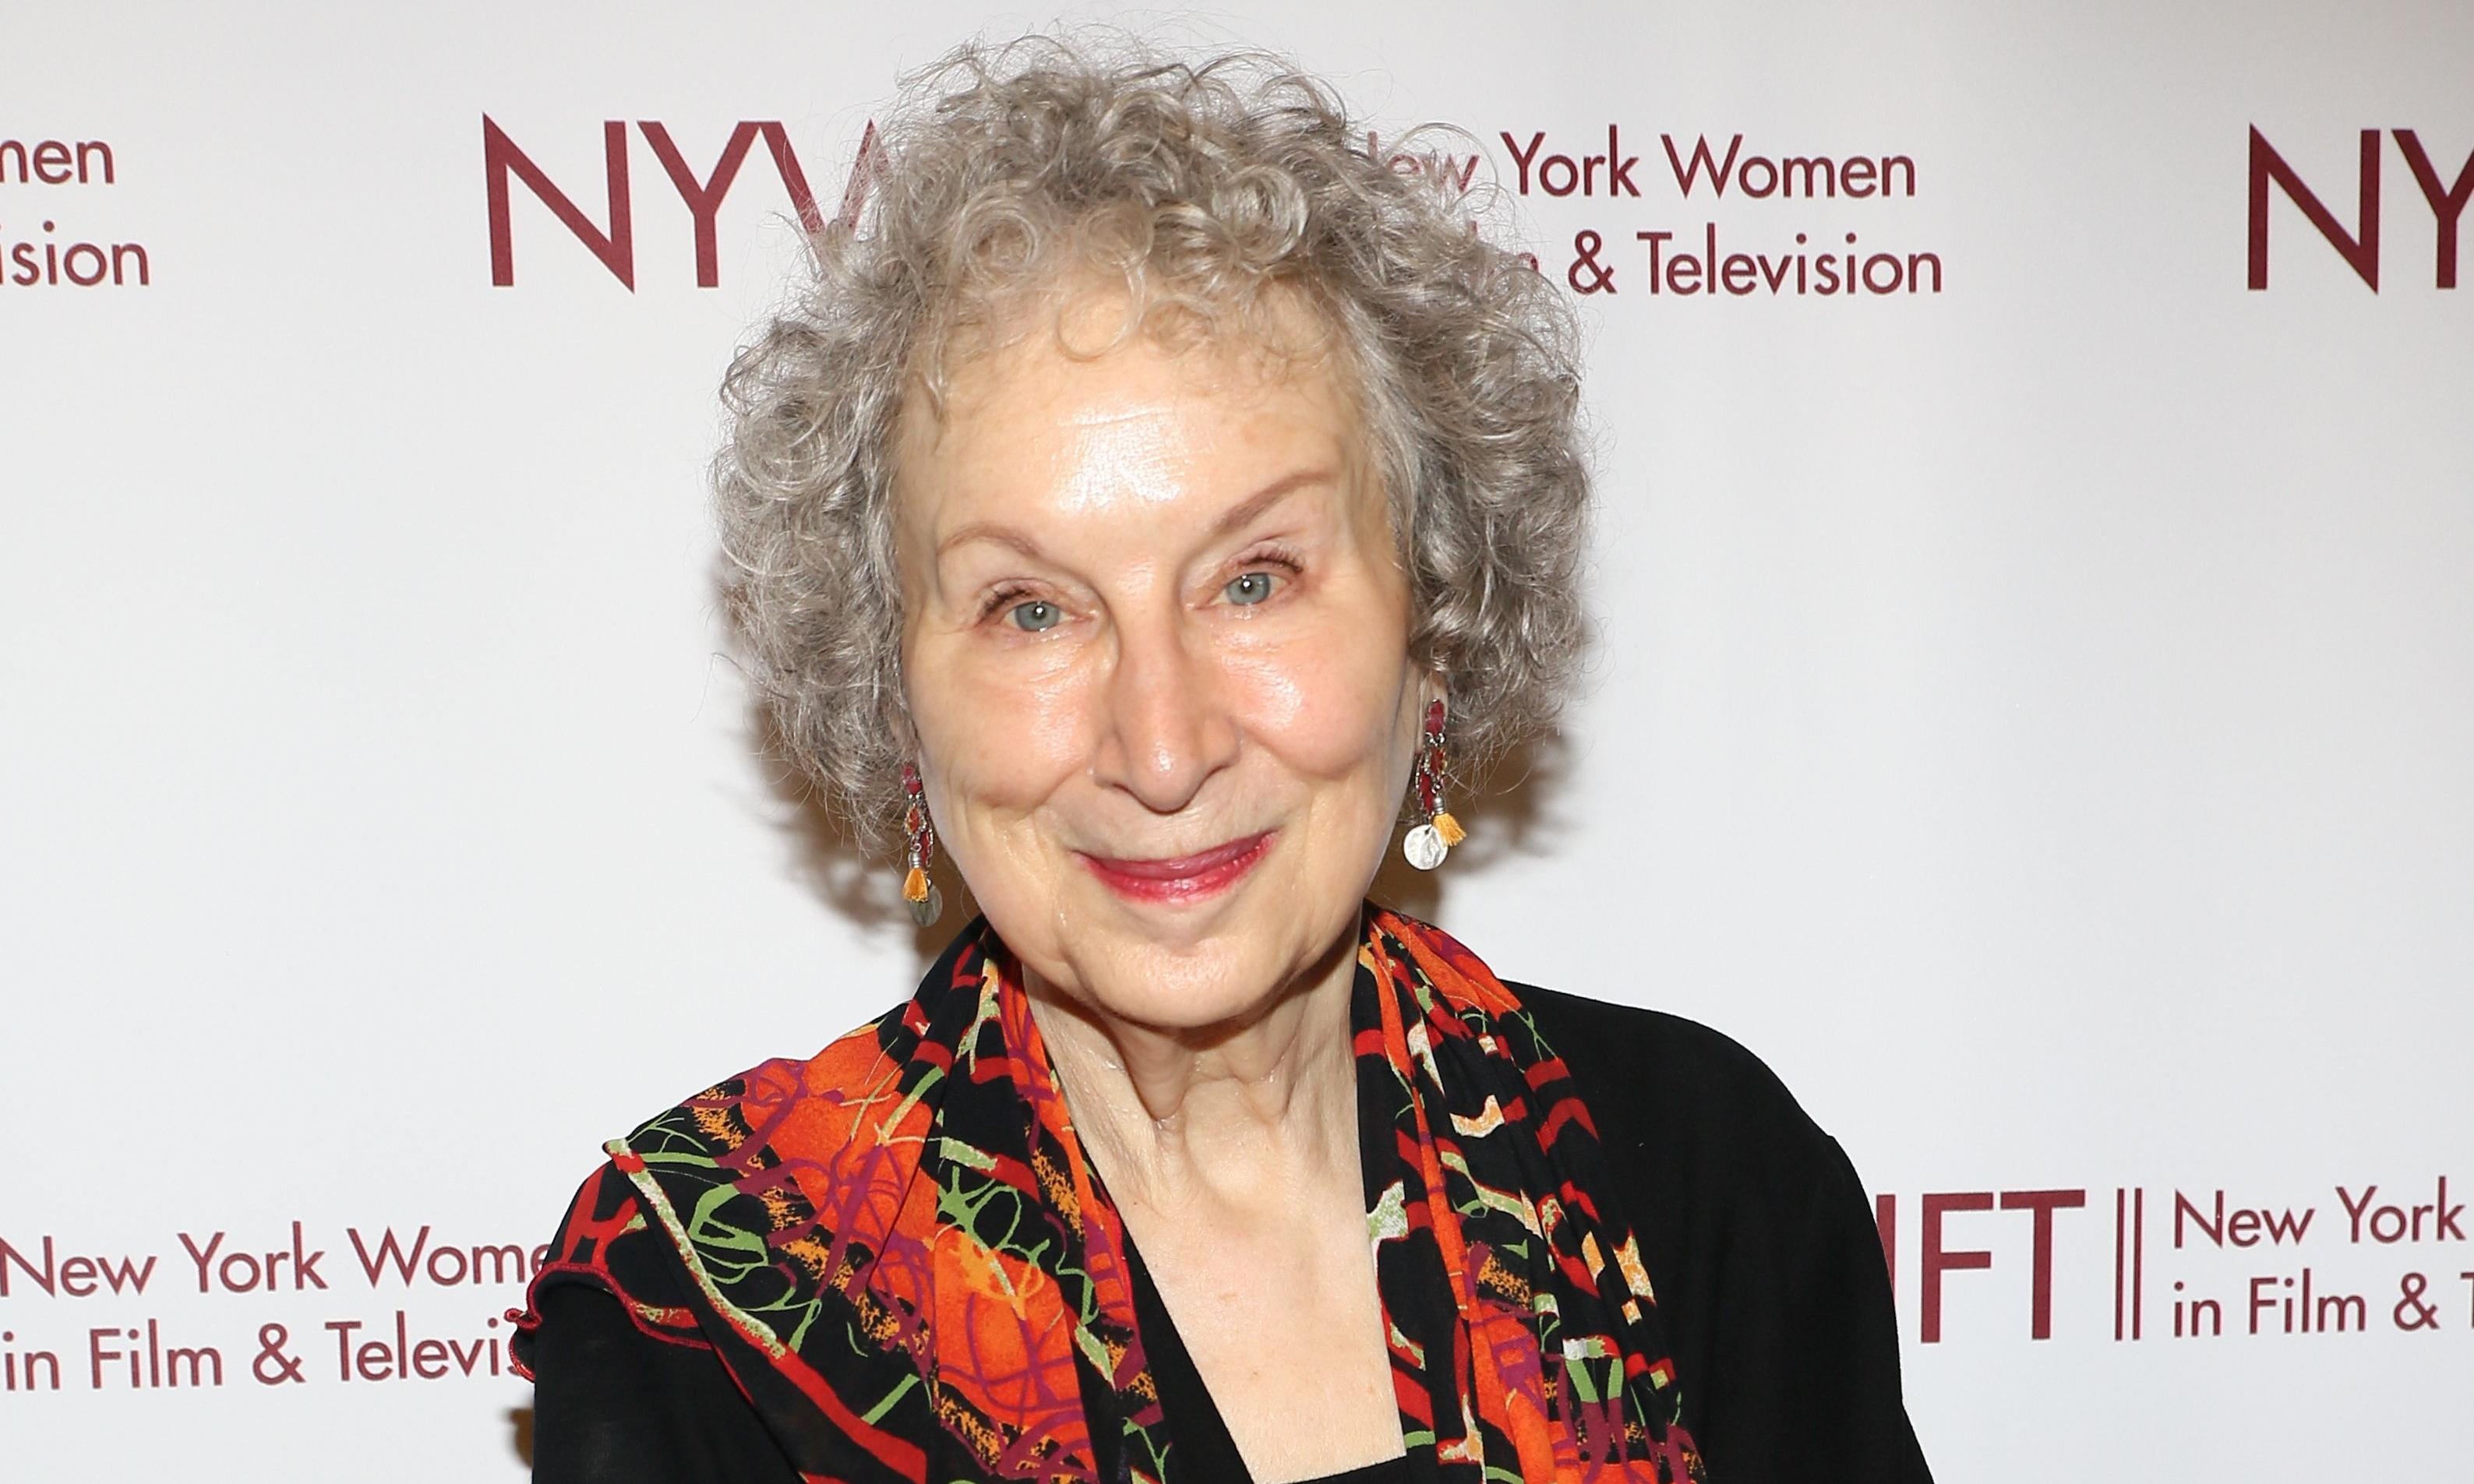 Margaret Atwood to publish first collection of poetry in over a decade